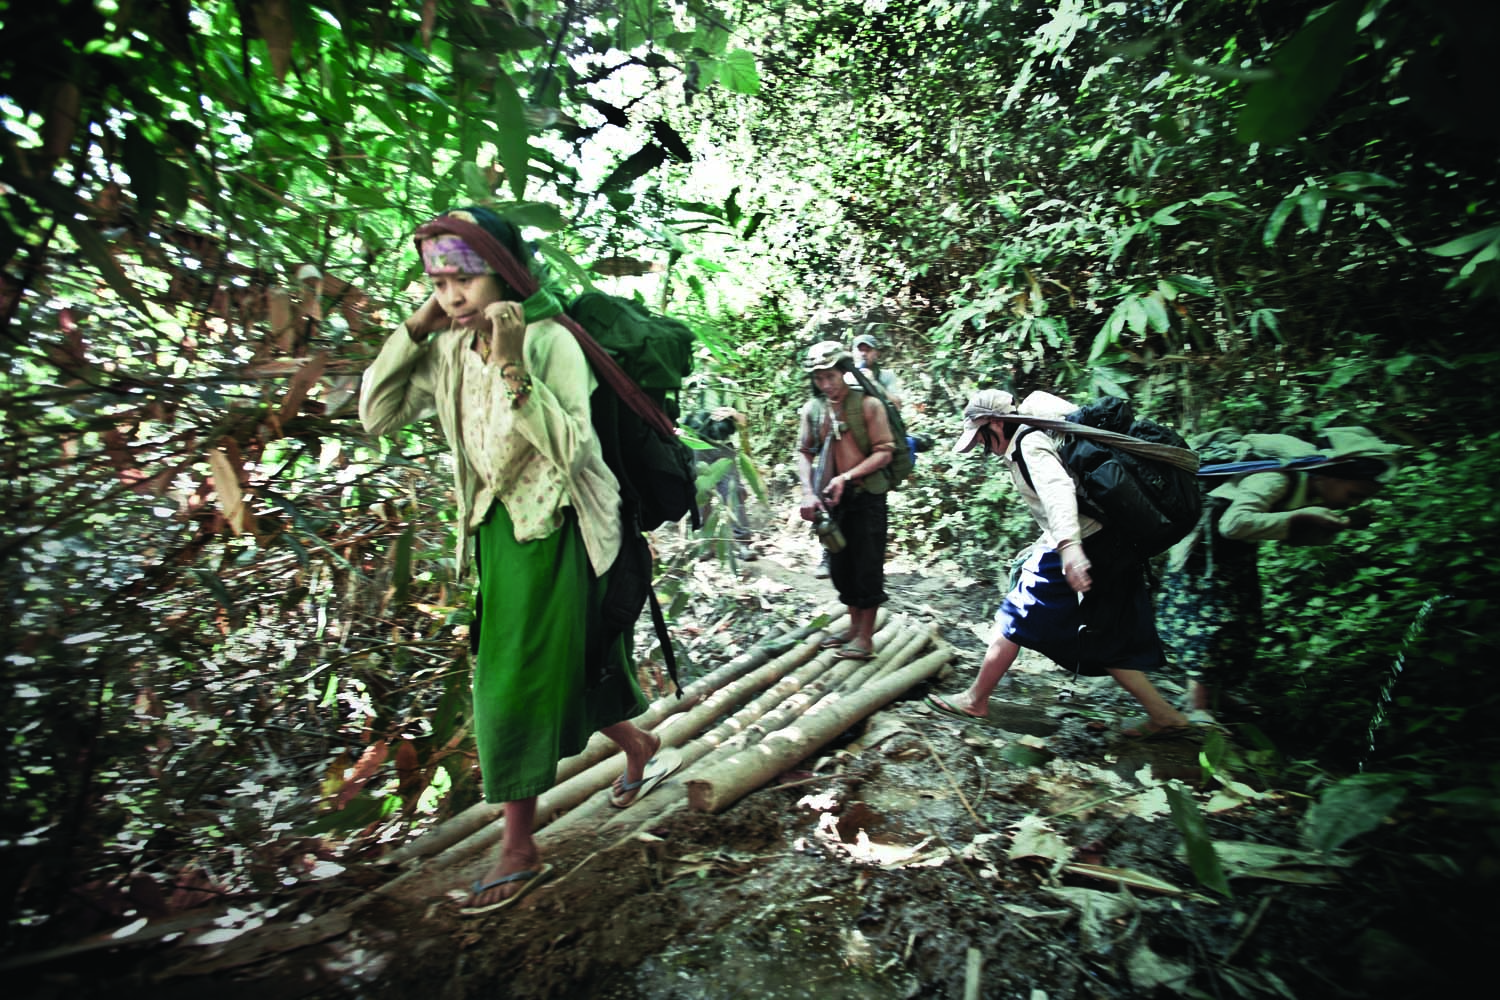 Most villages within Karen state are only accessible through a network of jungle paths. Supplies are carried in by  porters, many of them  young women who carry up to fifty pounds up and down steep mountain routes. Medical supplies, as well as basic necessities, are smuggled in from Thailand then trekked to remote villages.